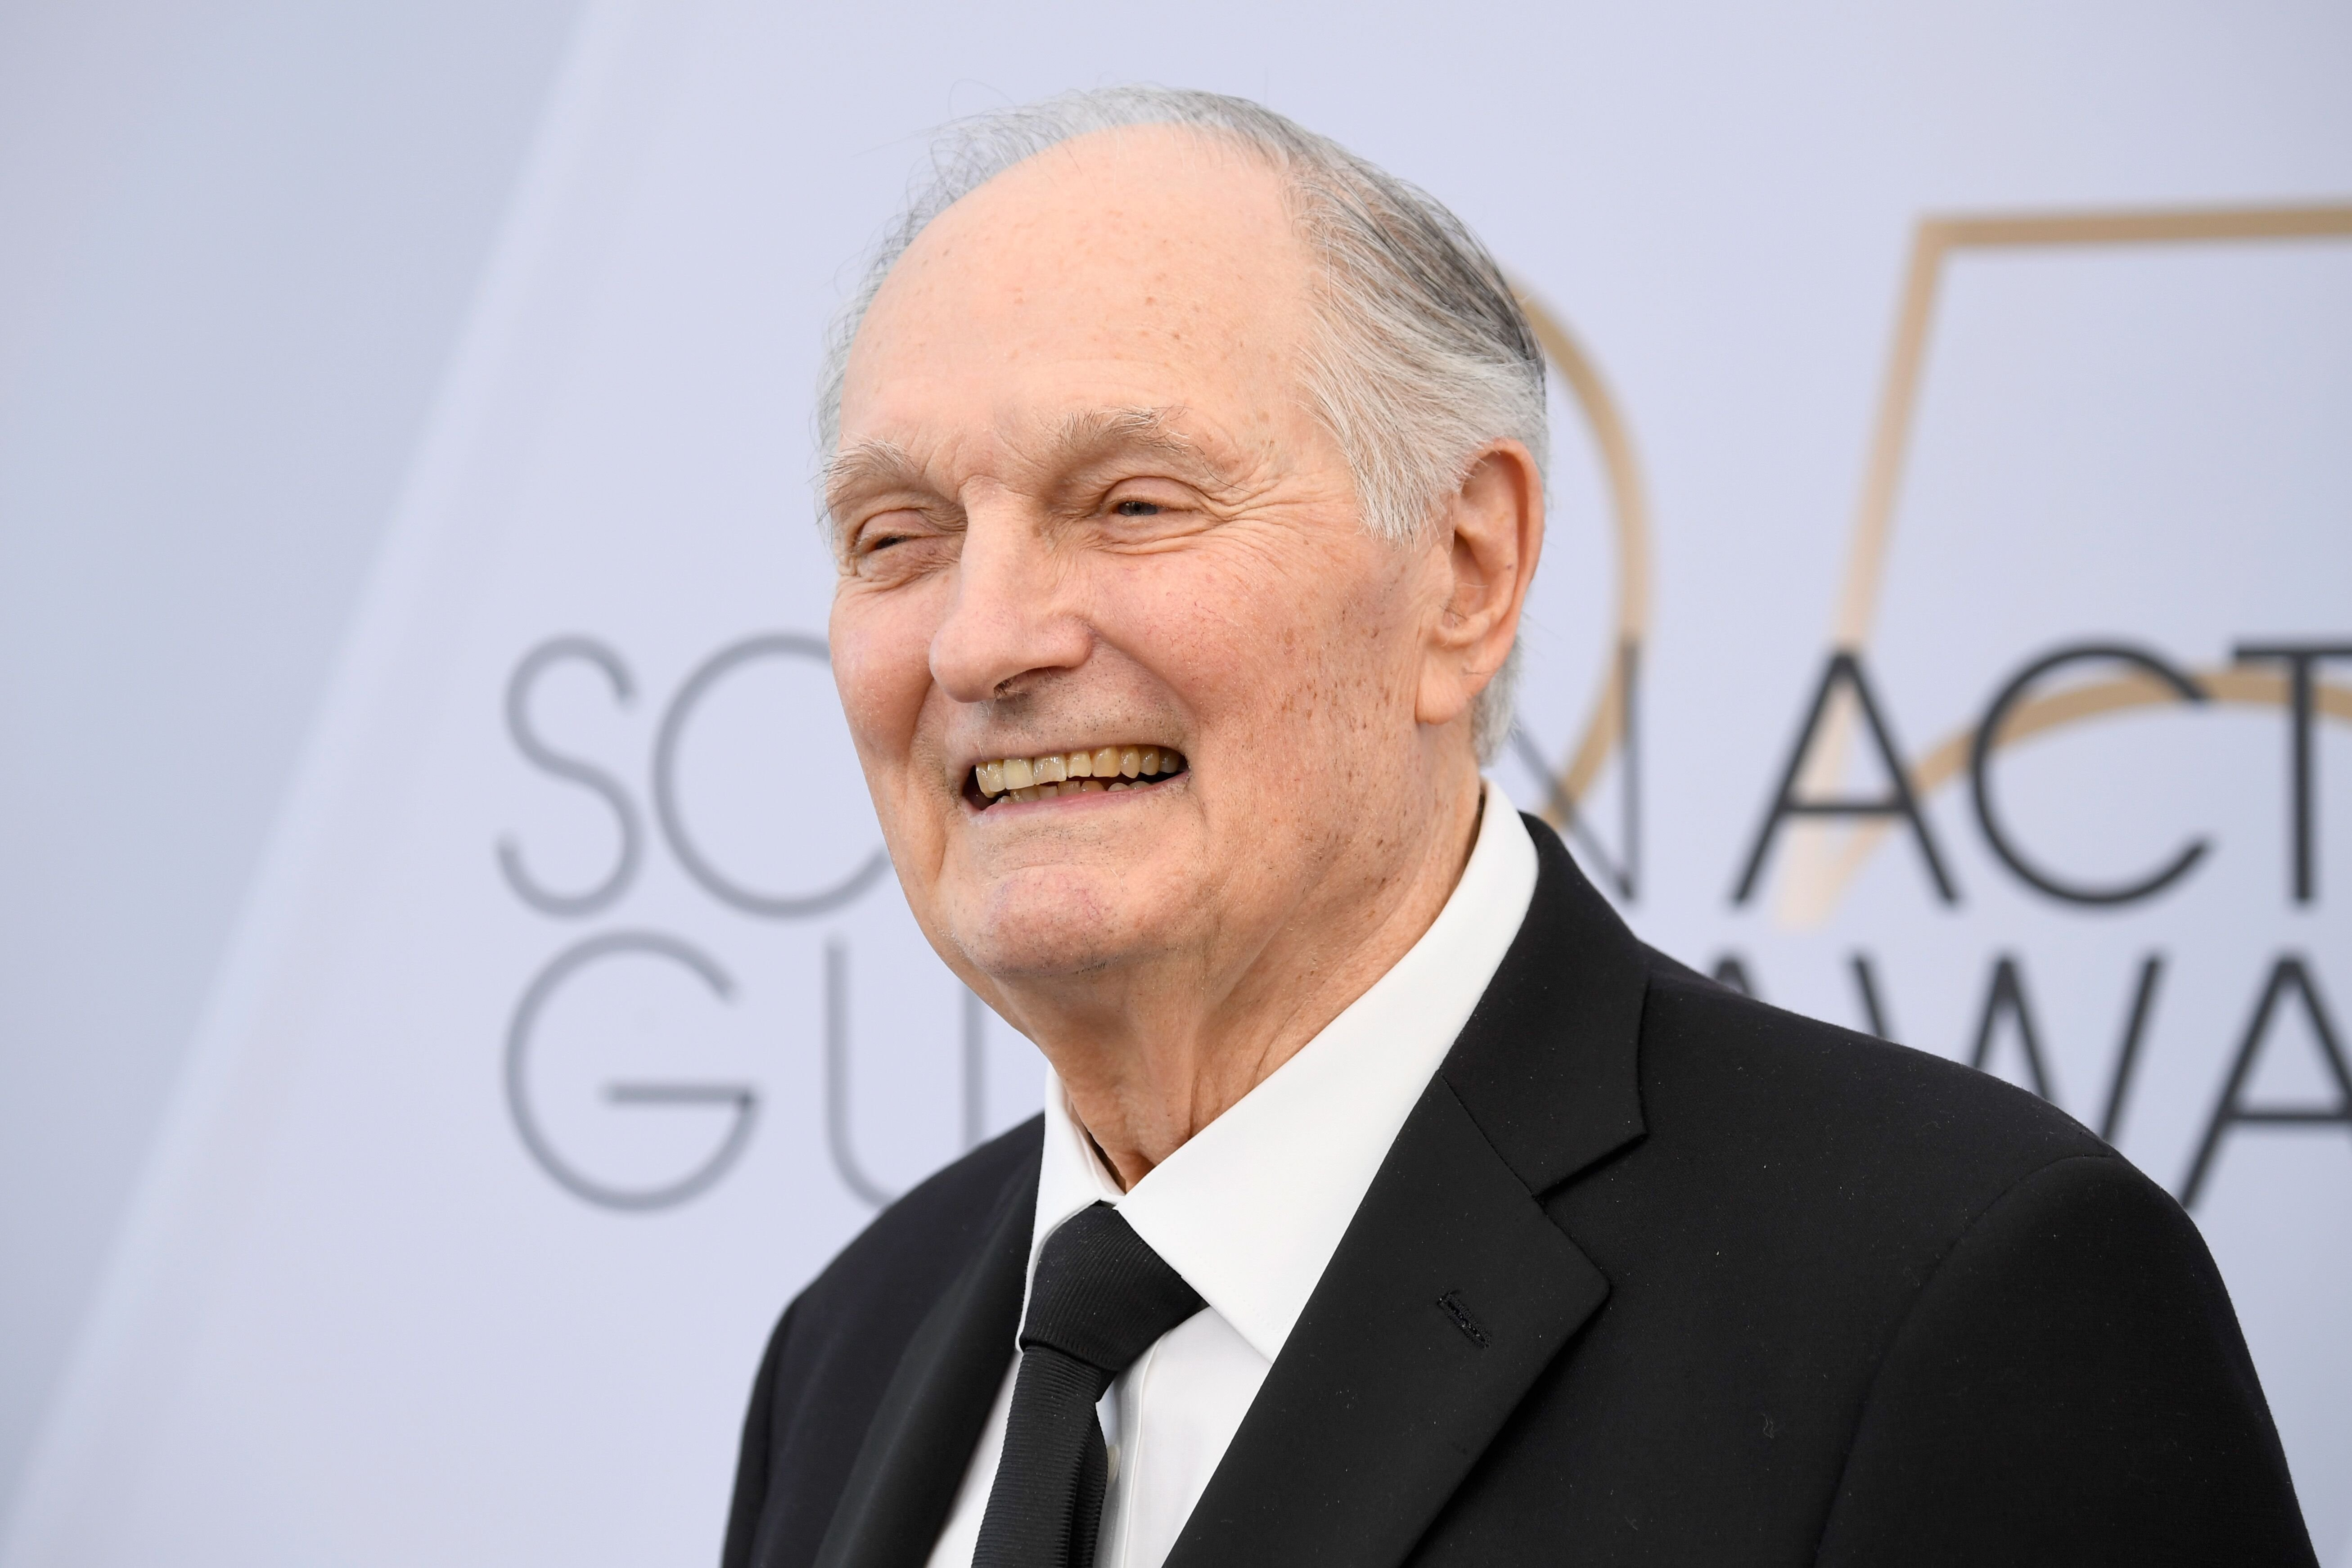 Alan Alda attends the 25th Annual Screen Actors Guild Awards at The Shrine Auditorium on January 27, 2019 in Los Angeles, California | Photo: Getty Images